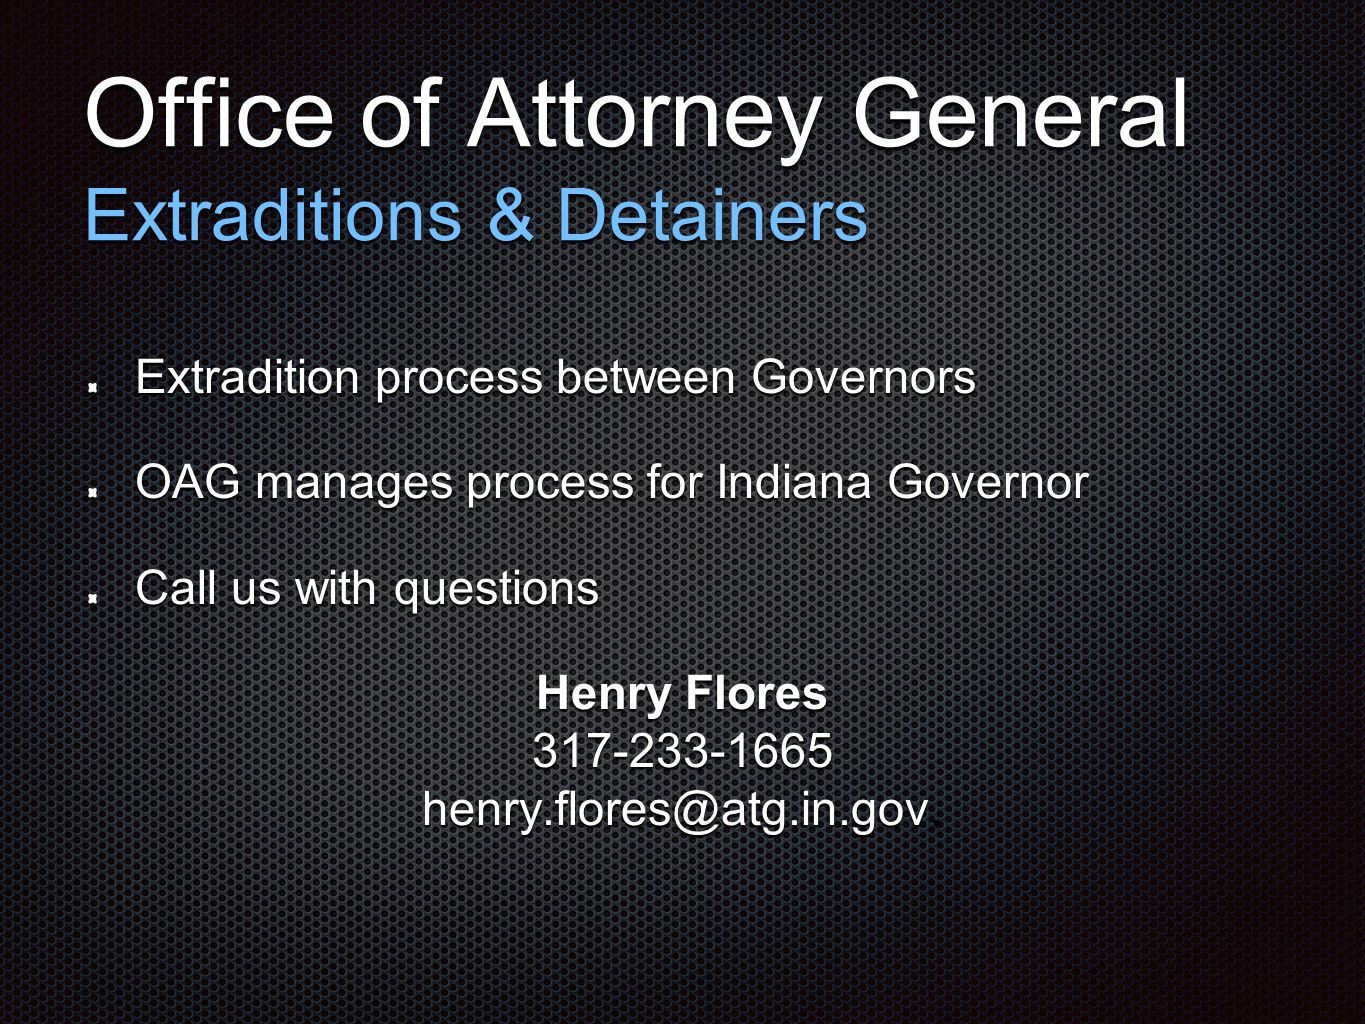 Office of Attorney General Extraditions & Detainers Extradition process between Governors OAG manages process for Indiana Governor Call us with questions Henry Flores 317-233-1665 henry.flores@atg.in.gov.